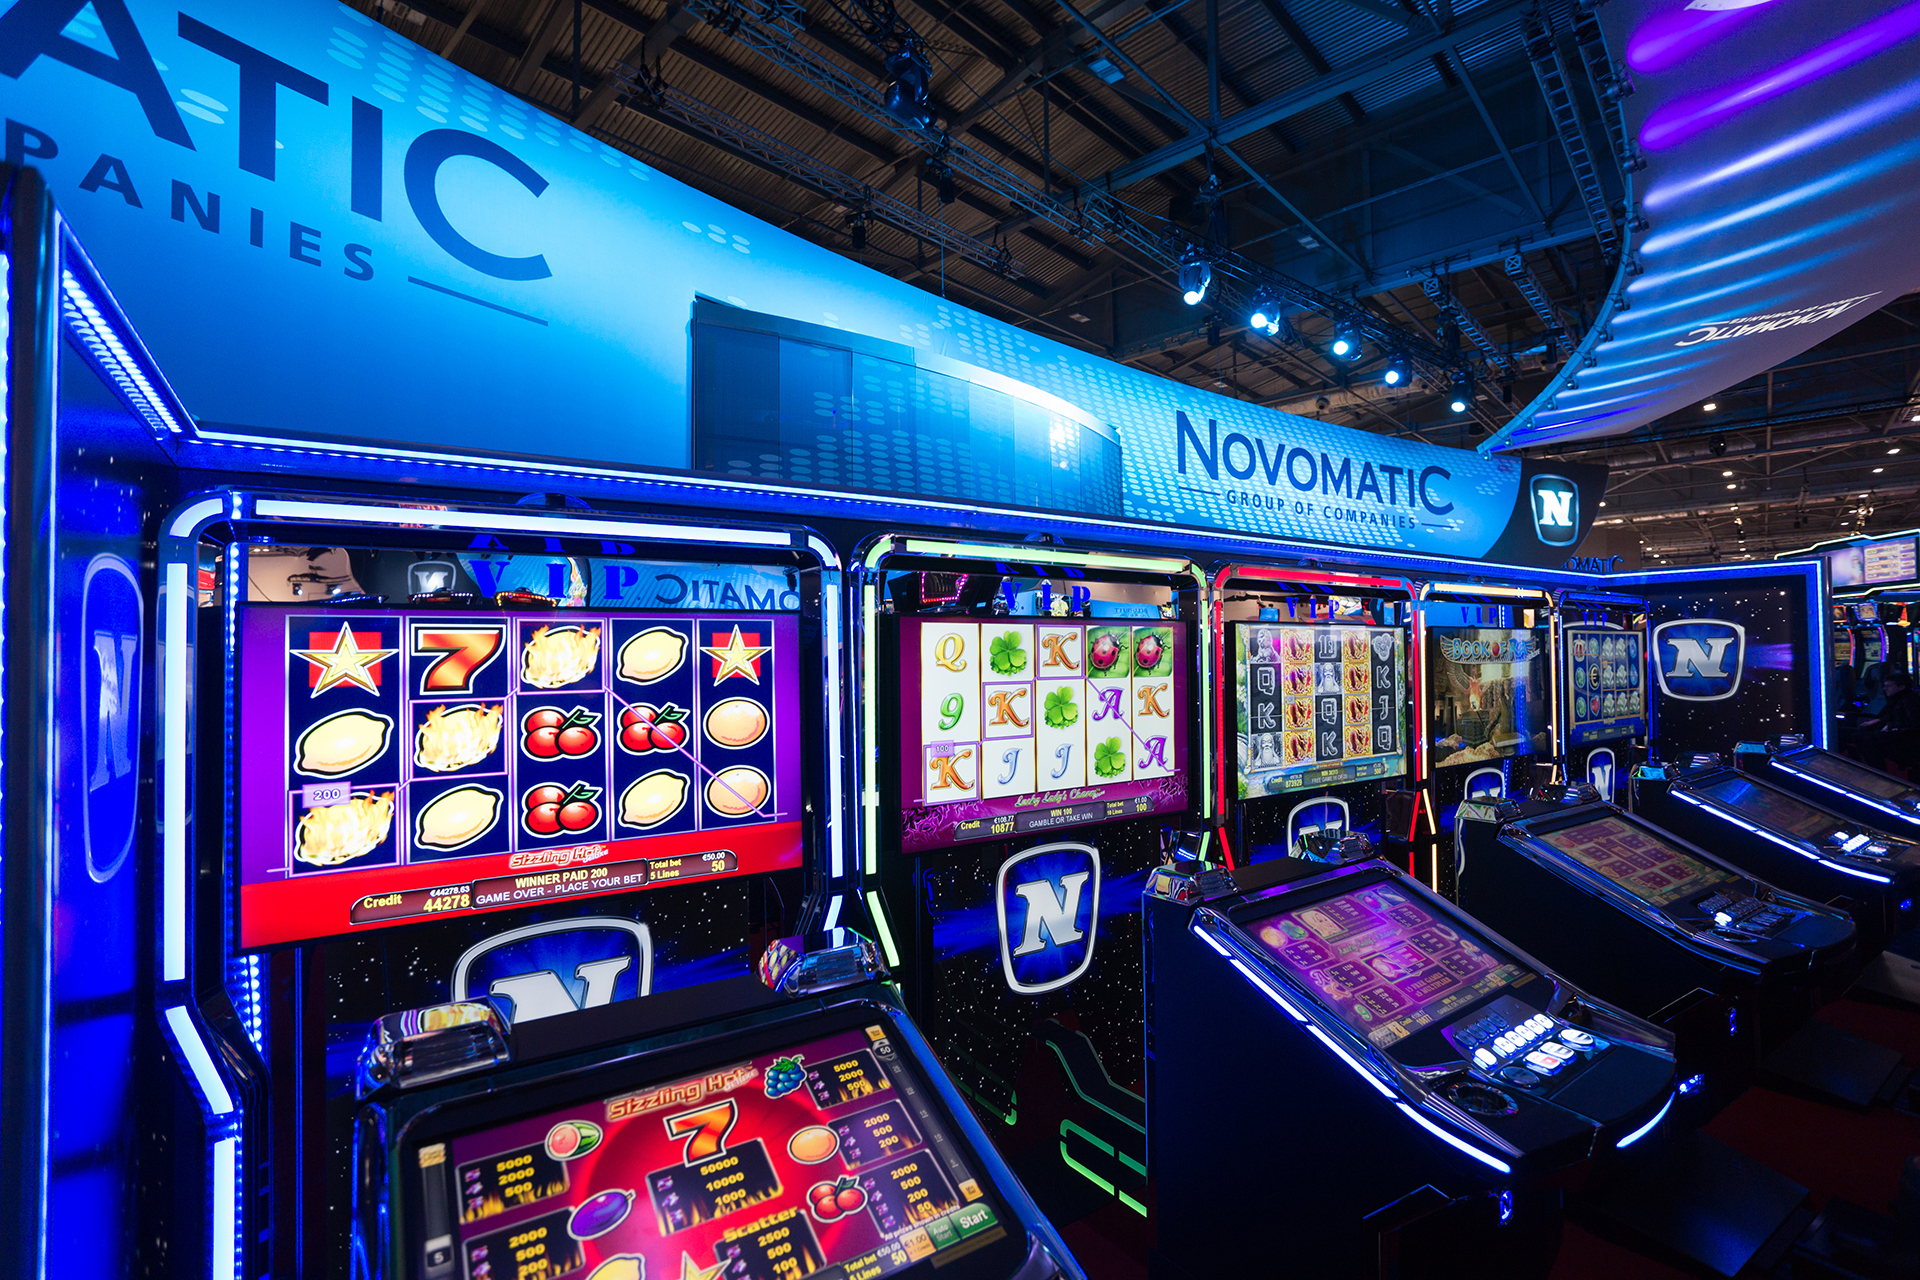 Slot machine novomatic trucchi